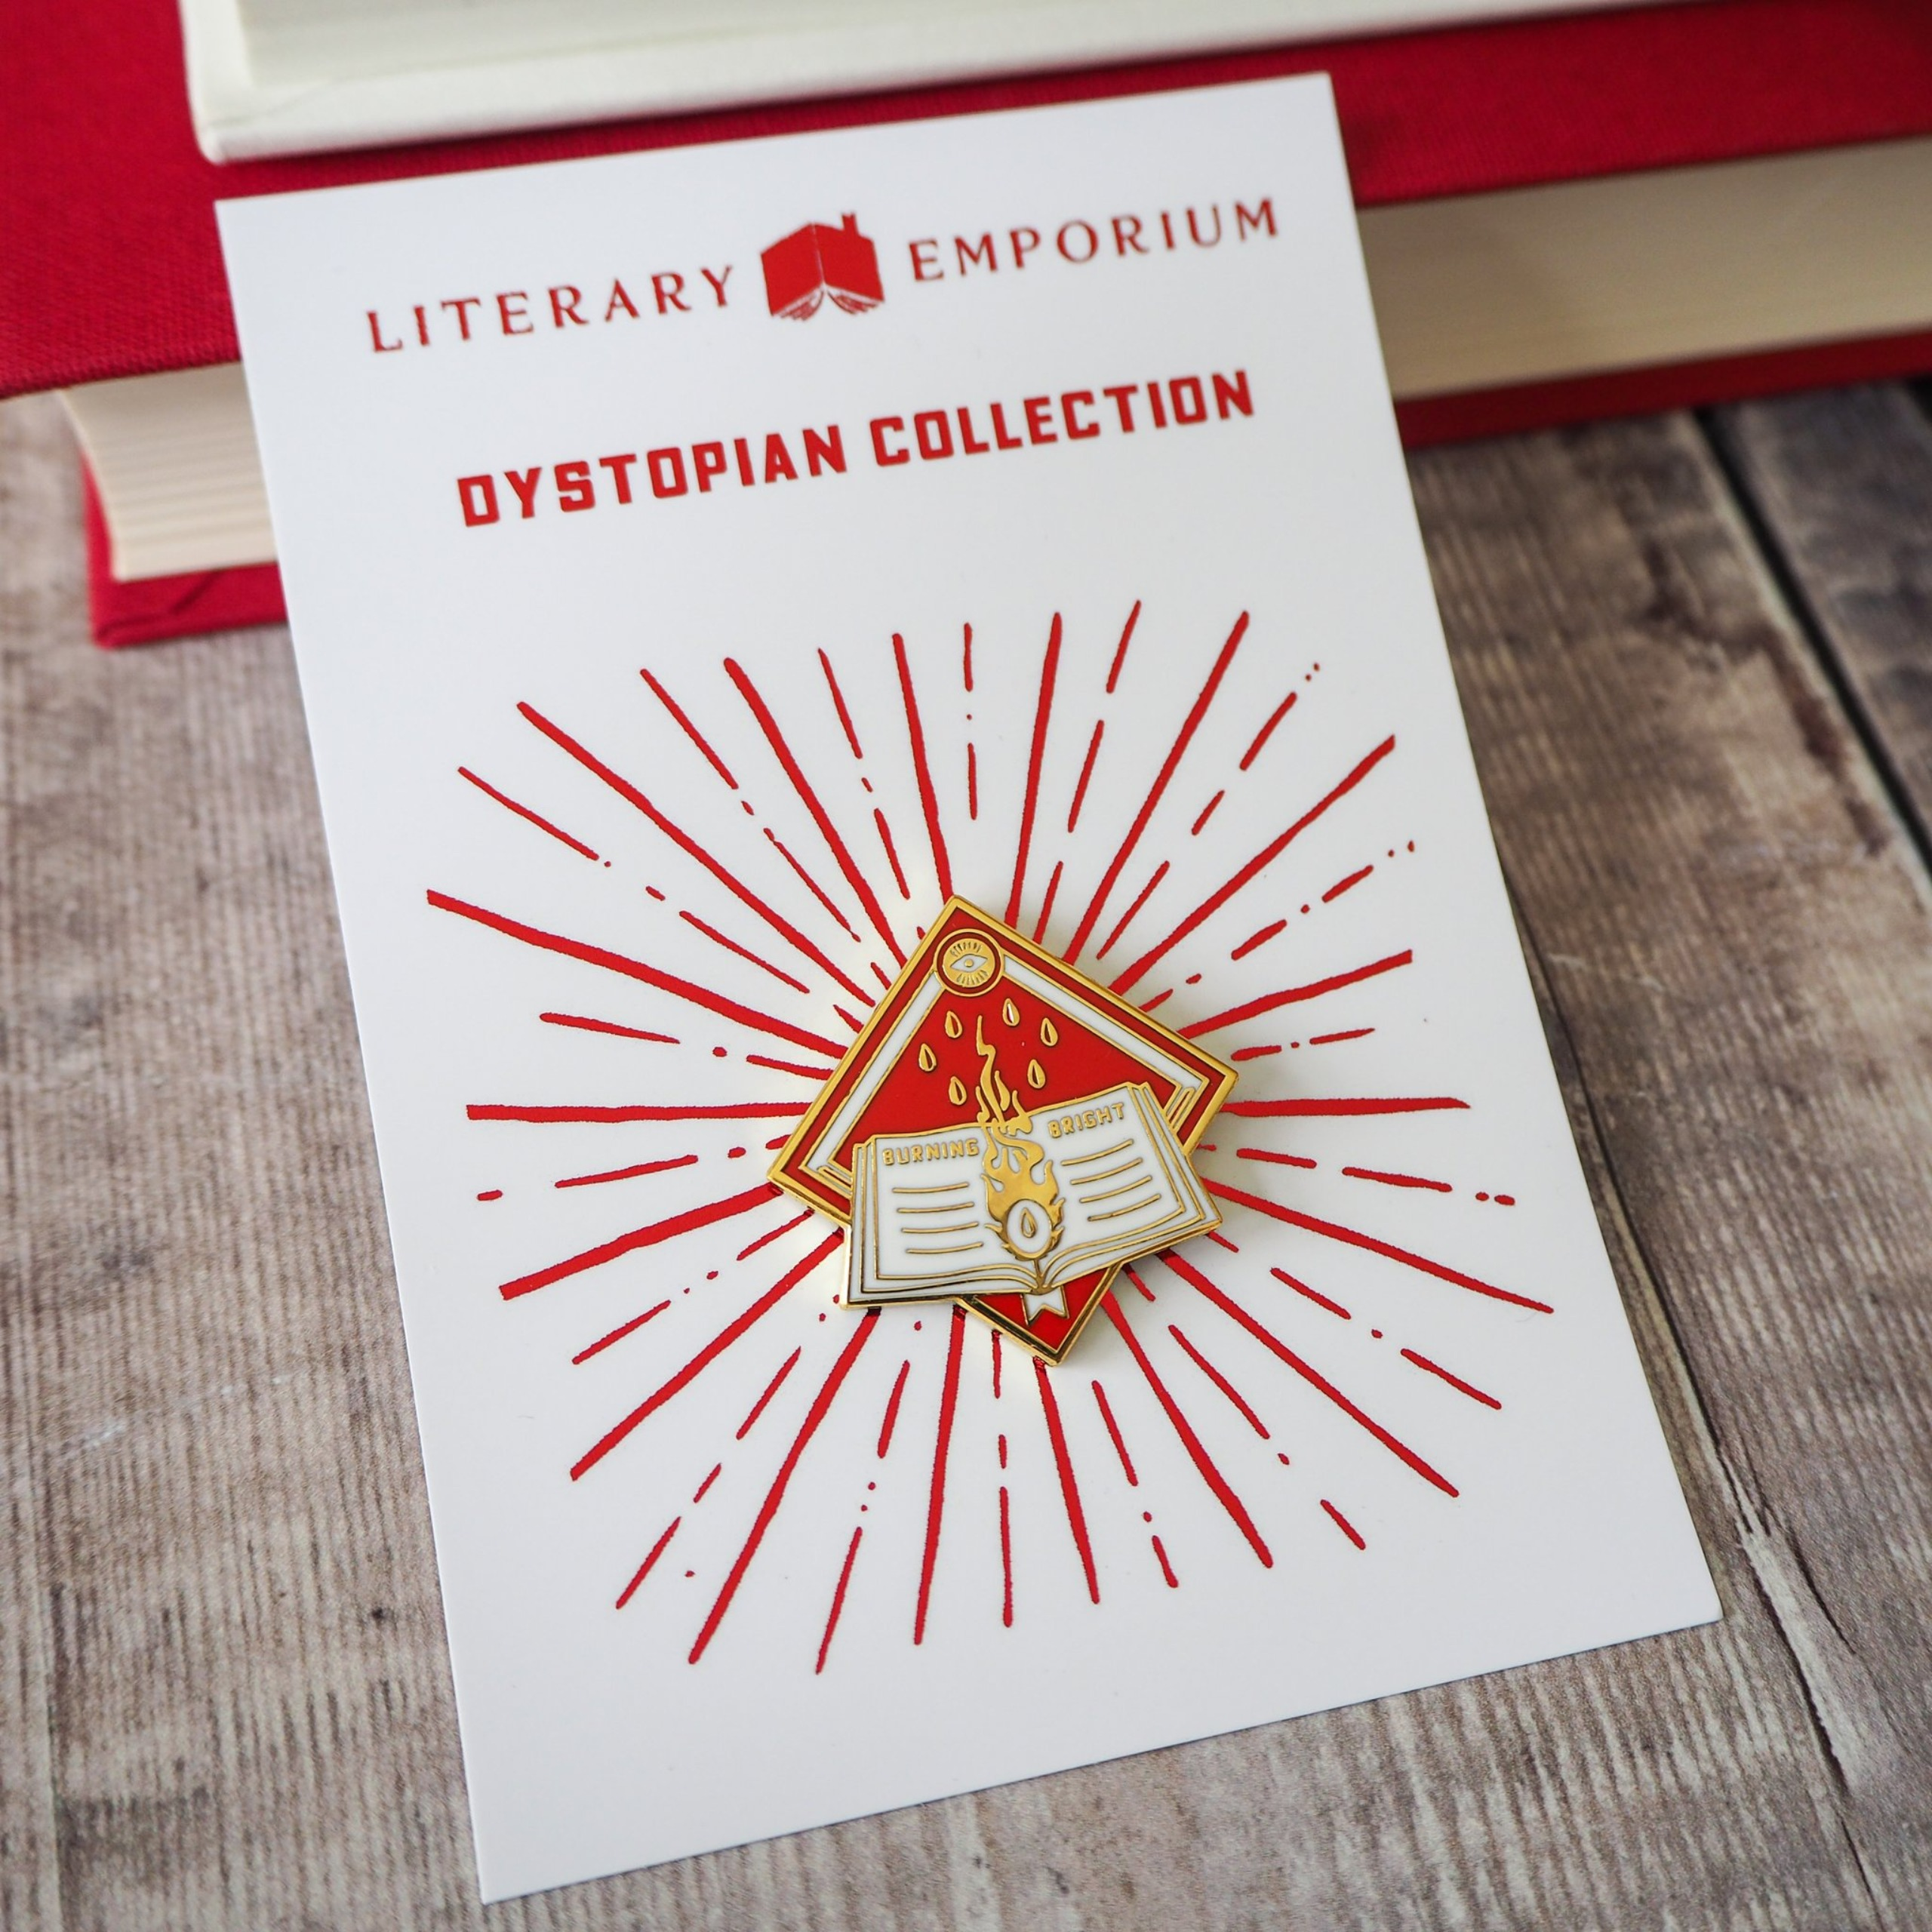 Enamel Pin - Dystopian Collection from Literary Emporium